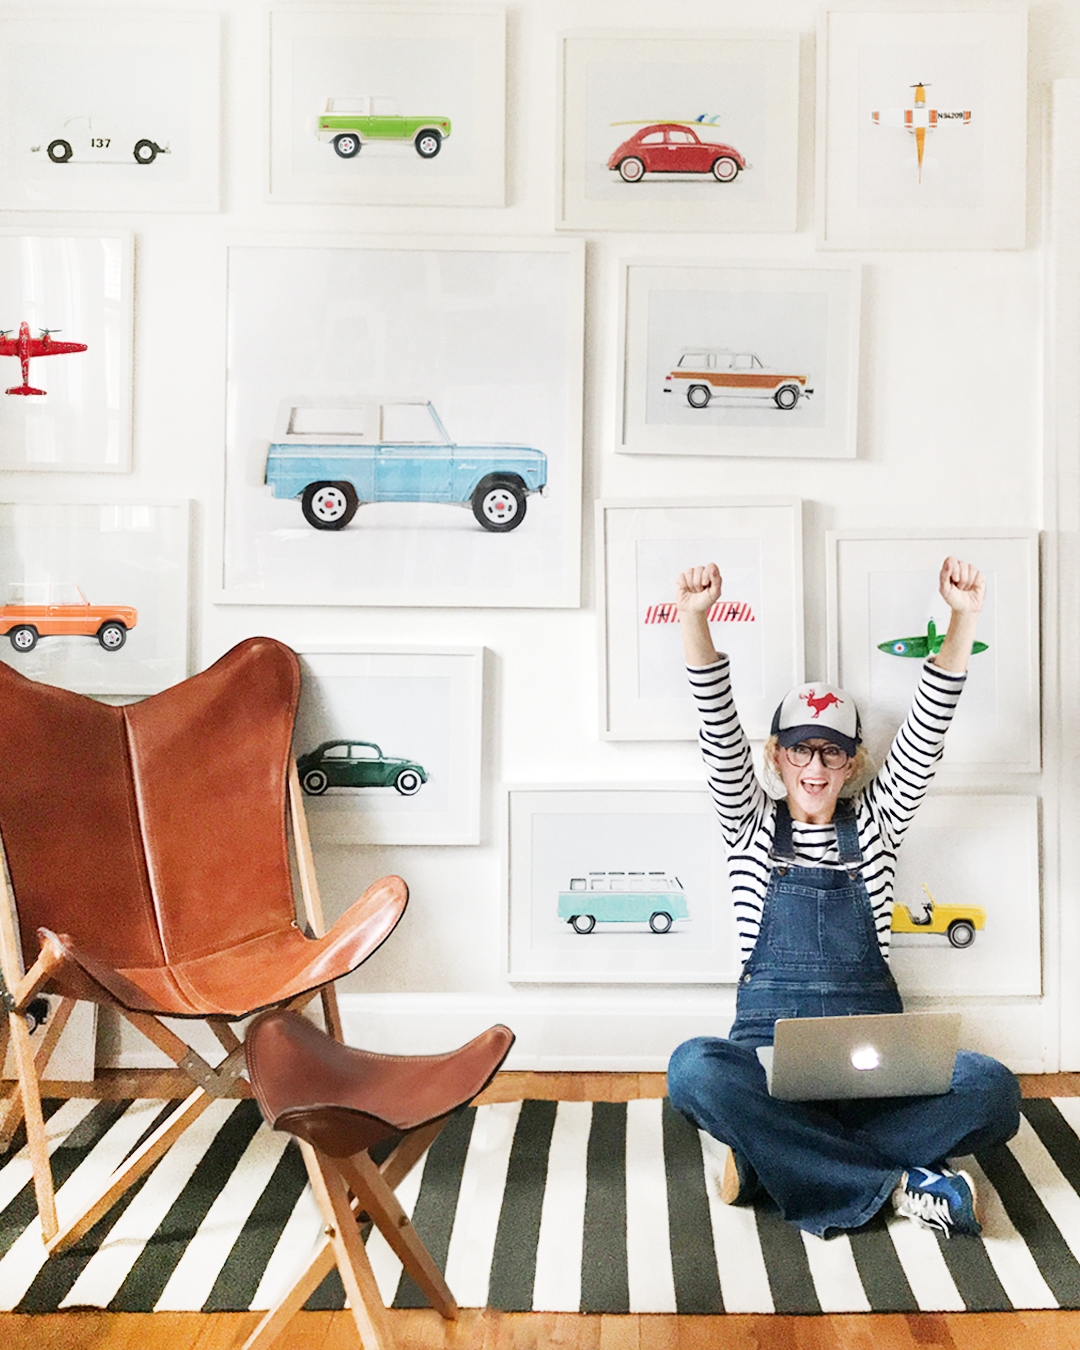 leslee-mitchell-cars-gallery-wall.jpg